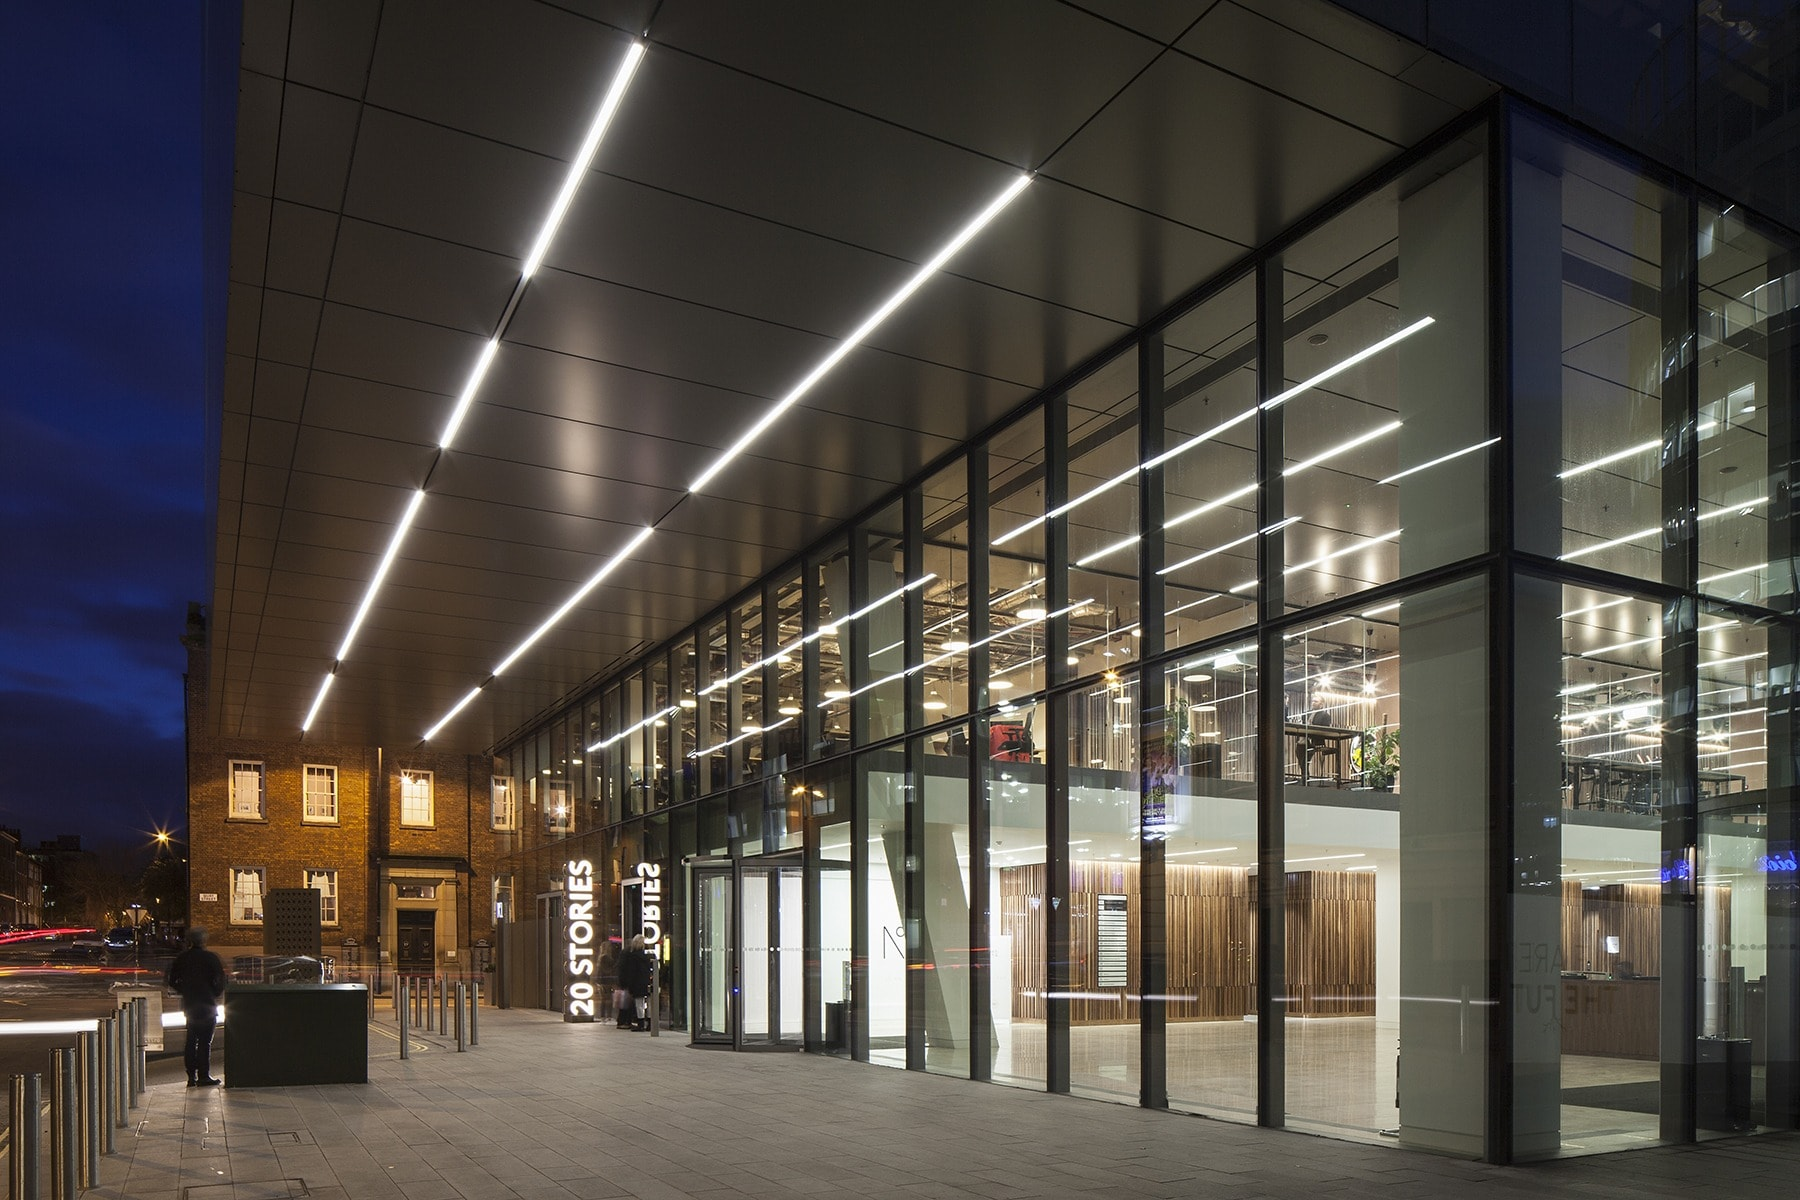 retail lighting design: exterior of One Spinningfields